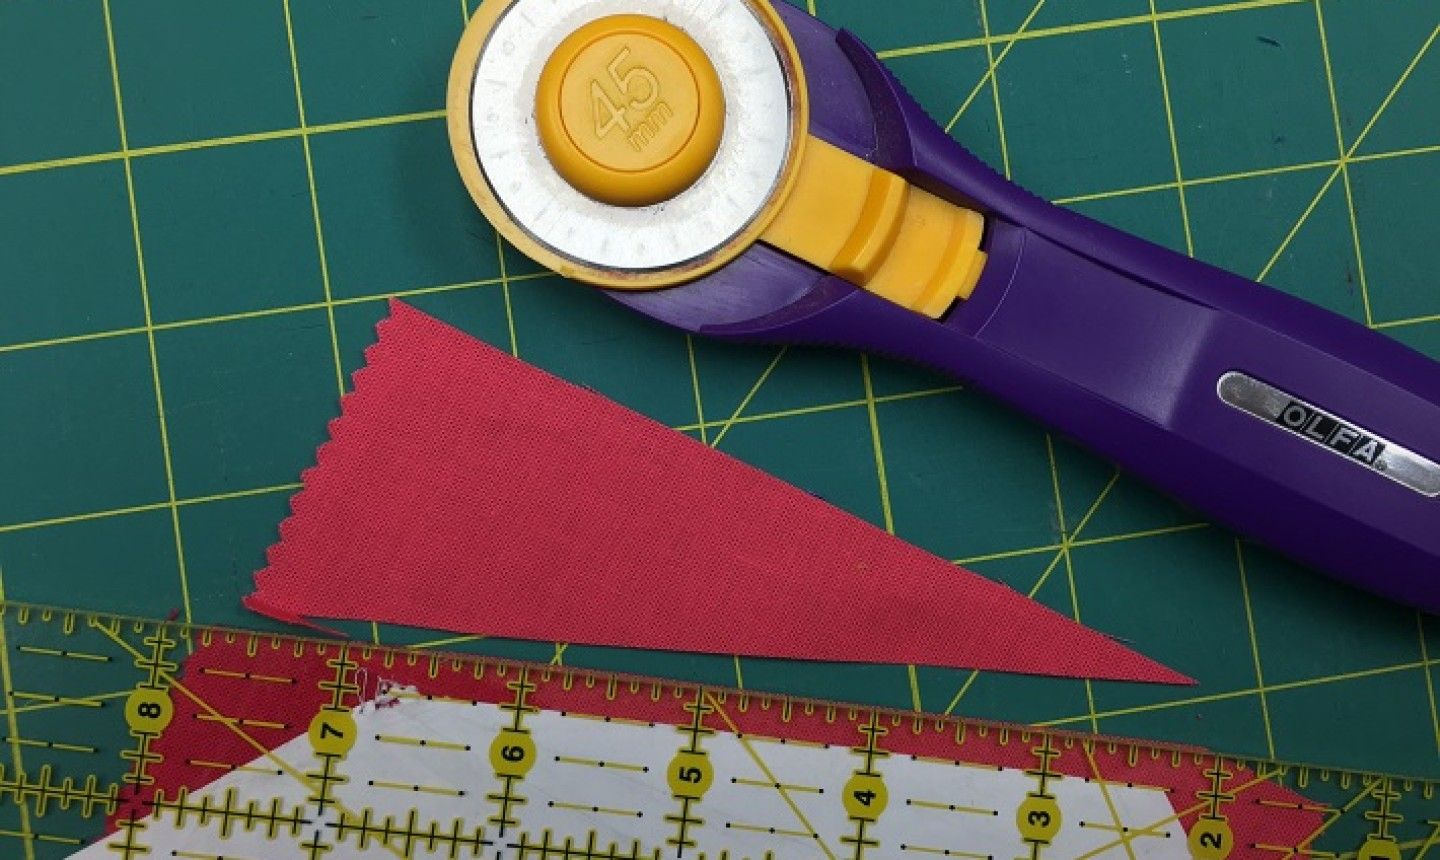 rotary cutter with cut red fabric strip